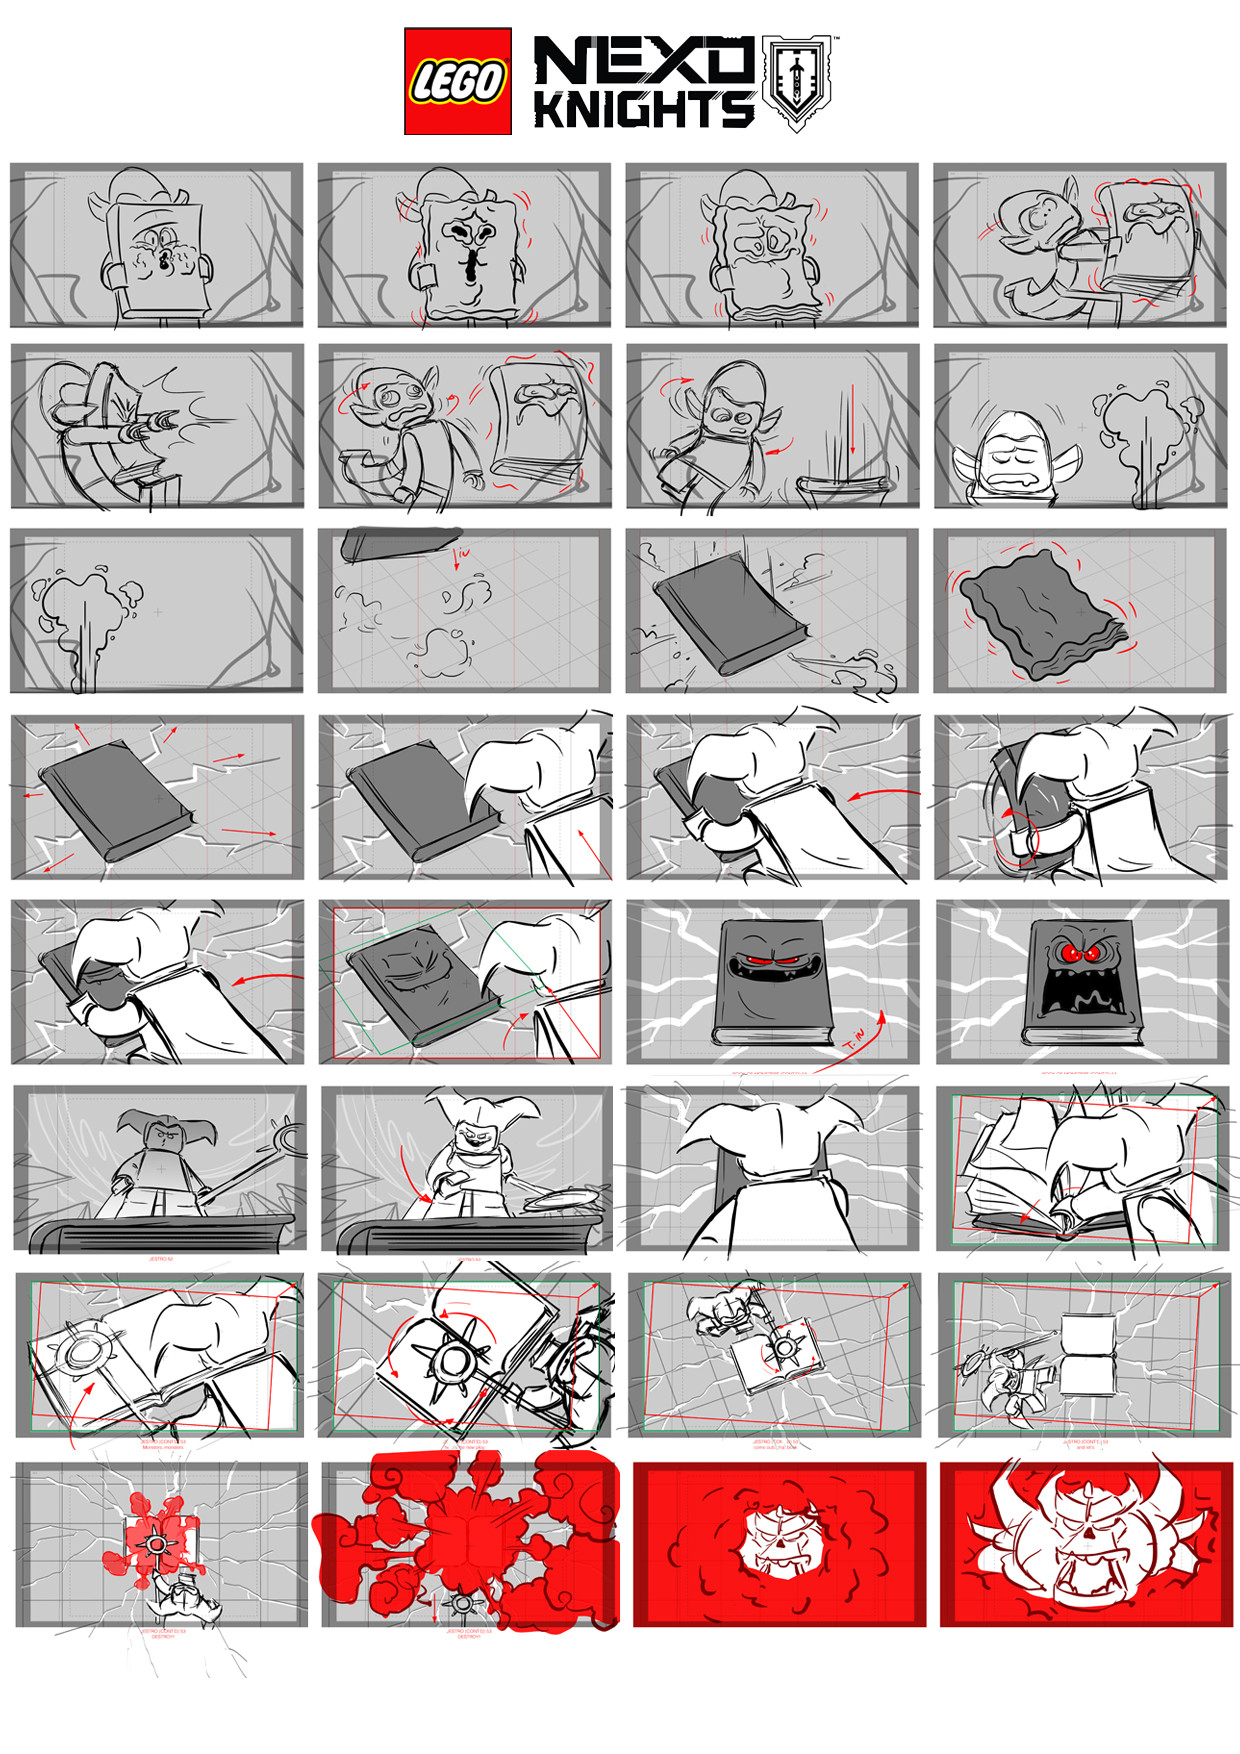 Miklos weigert storyboard page 02